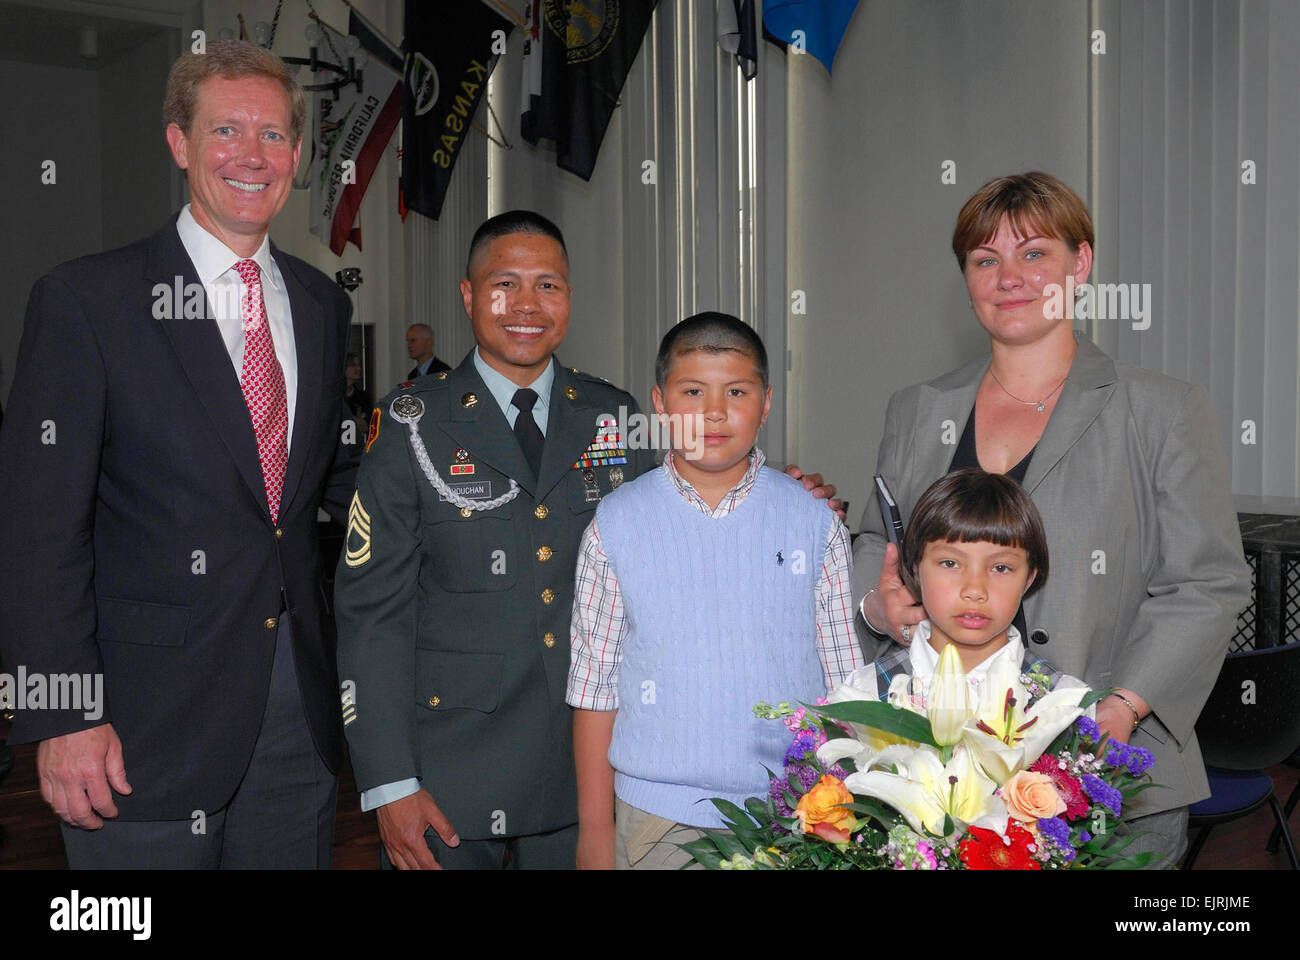 us citizenship immigration services stock photos us citizenship jonathan scharfen acting director of u s citizenship and immigration services poses army sgt